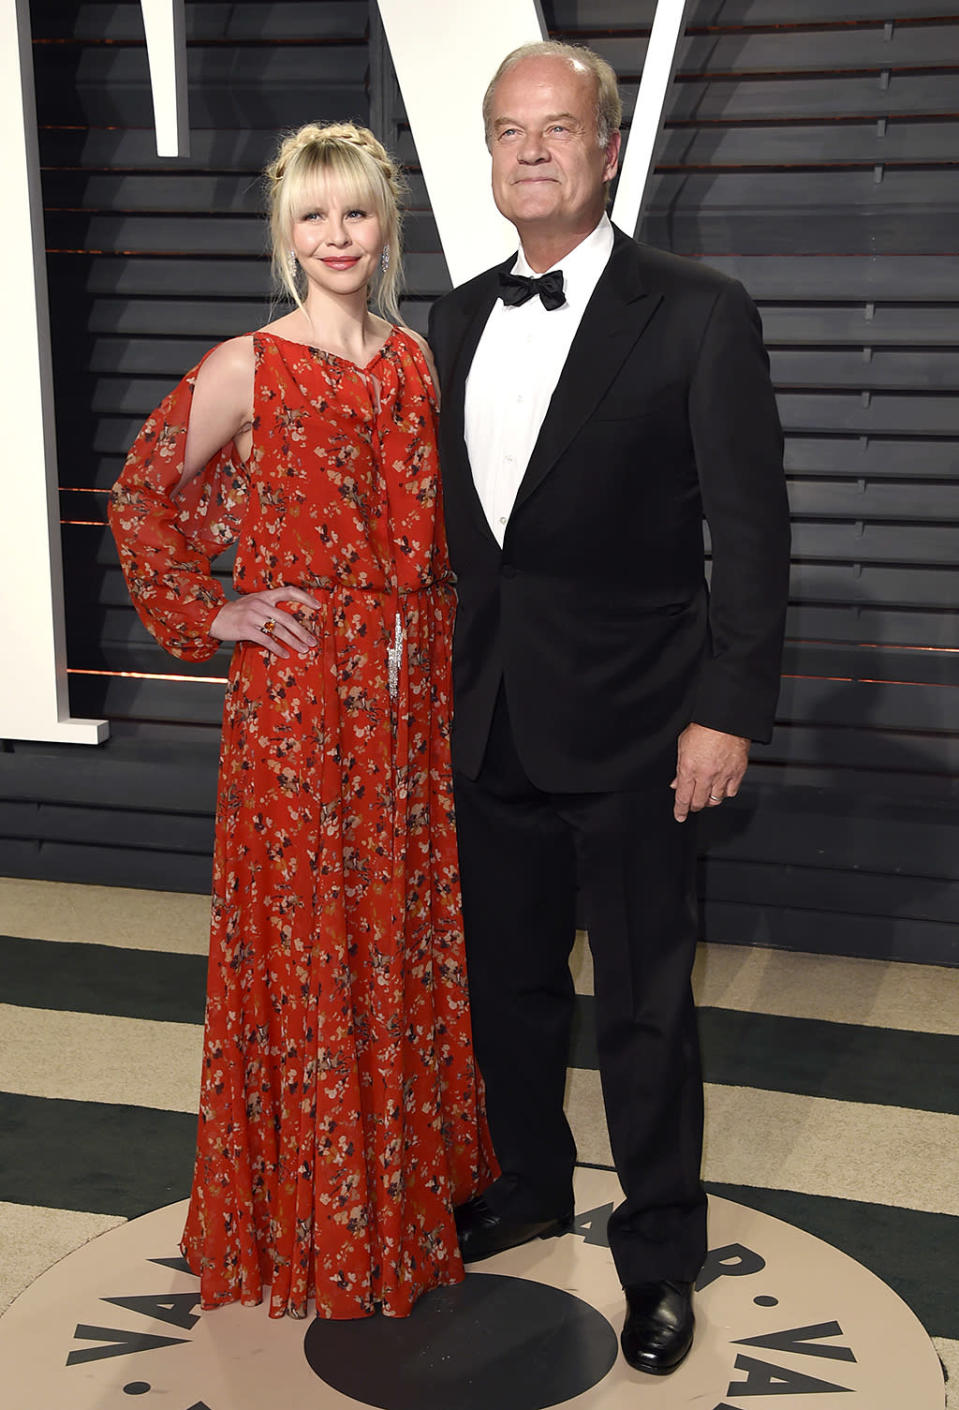 <p>Kelsey Grammer, right, and Kayte Walsh arrive at the Vanity Fair Oscar Party on Sunday, Feb. 26, 2017, in Beverly Hills, Calif. (Photo by Evan Agostini/Invision/AP) </p>